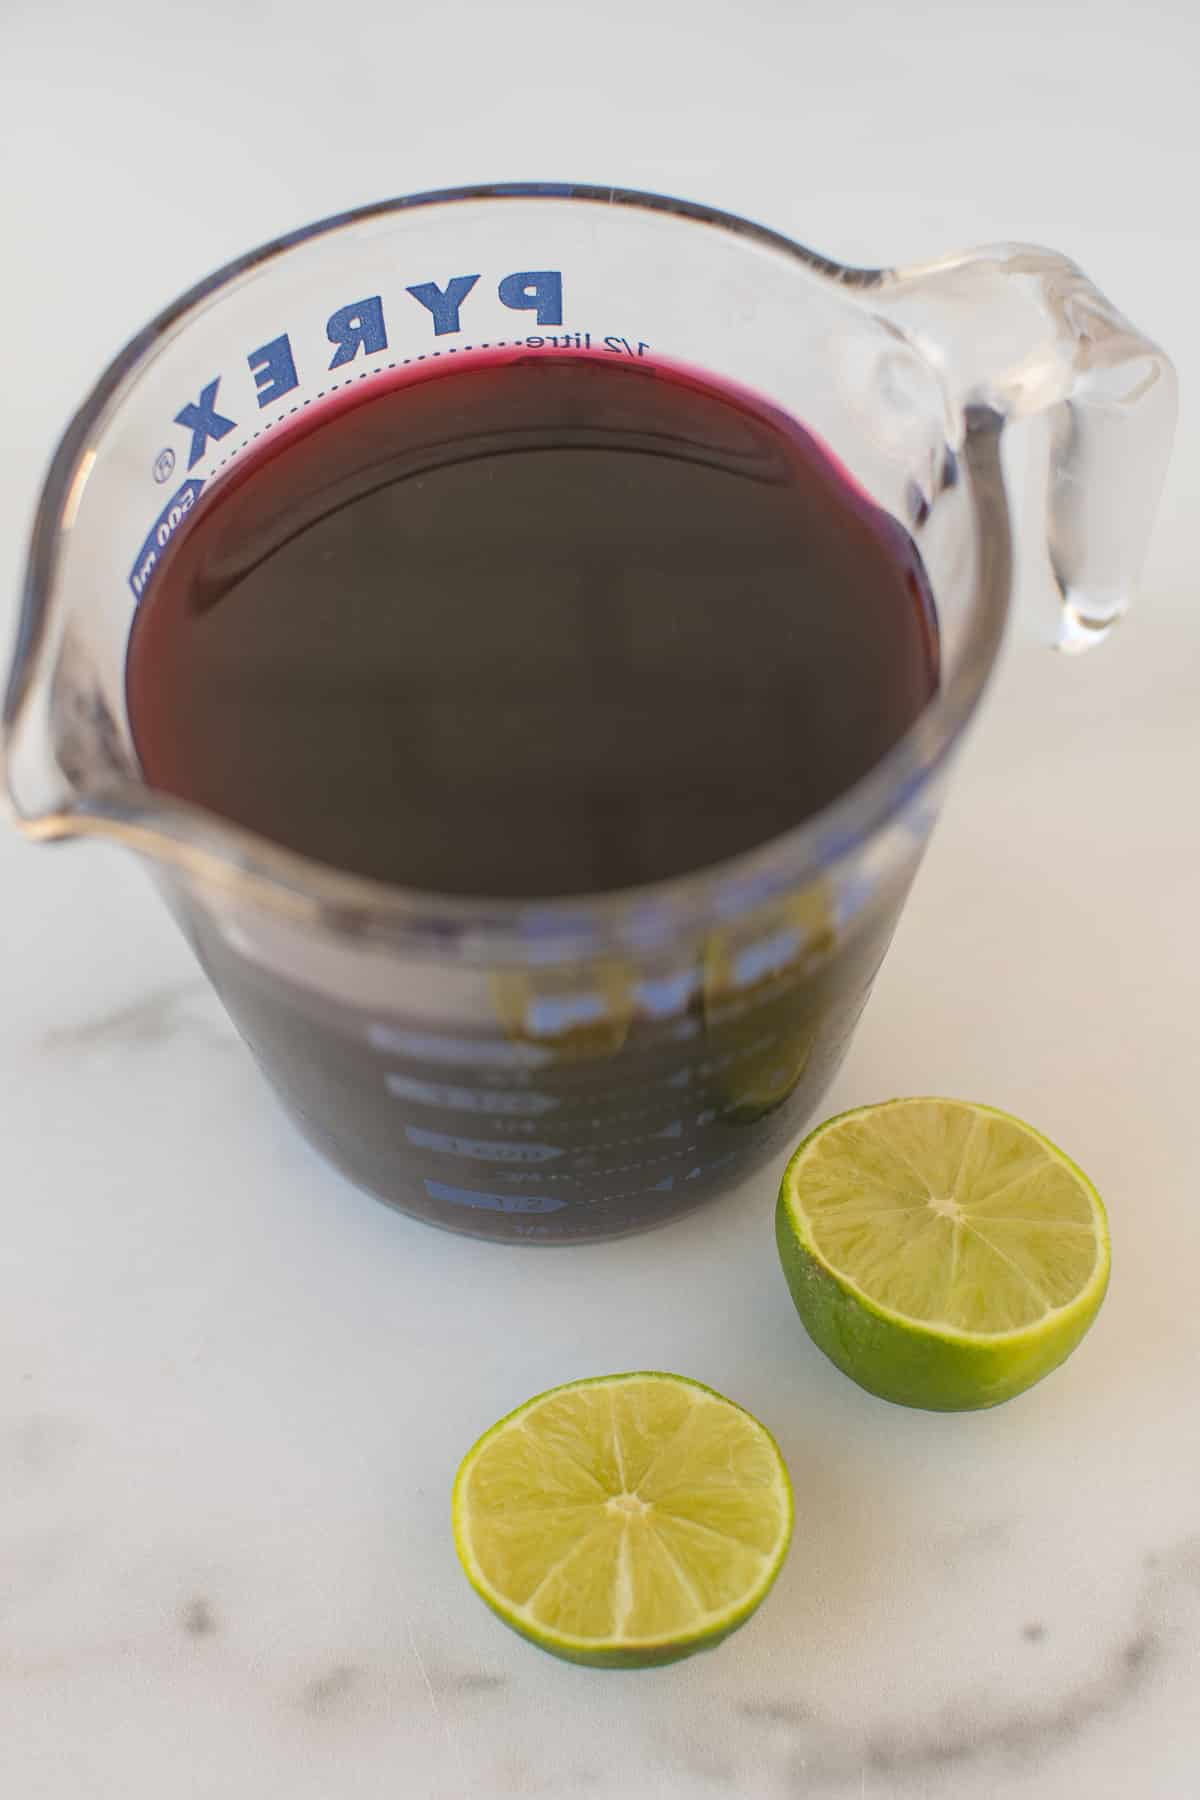 pyrex jar filled with pomegranate juice plus a lime